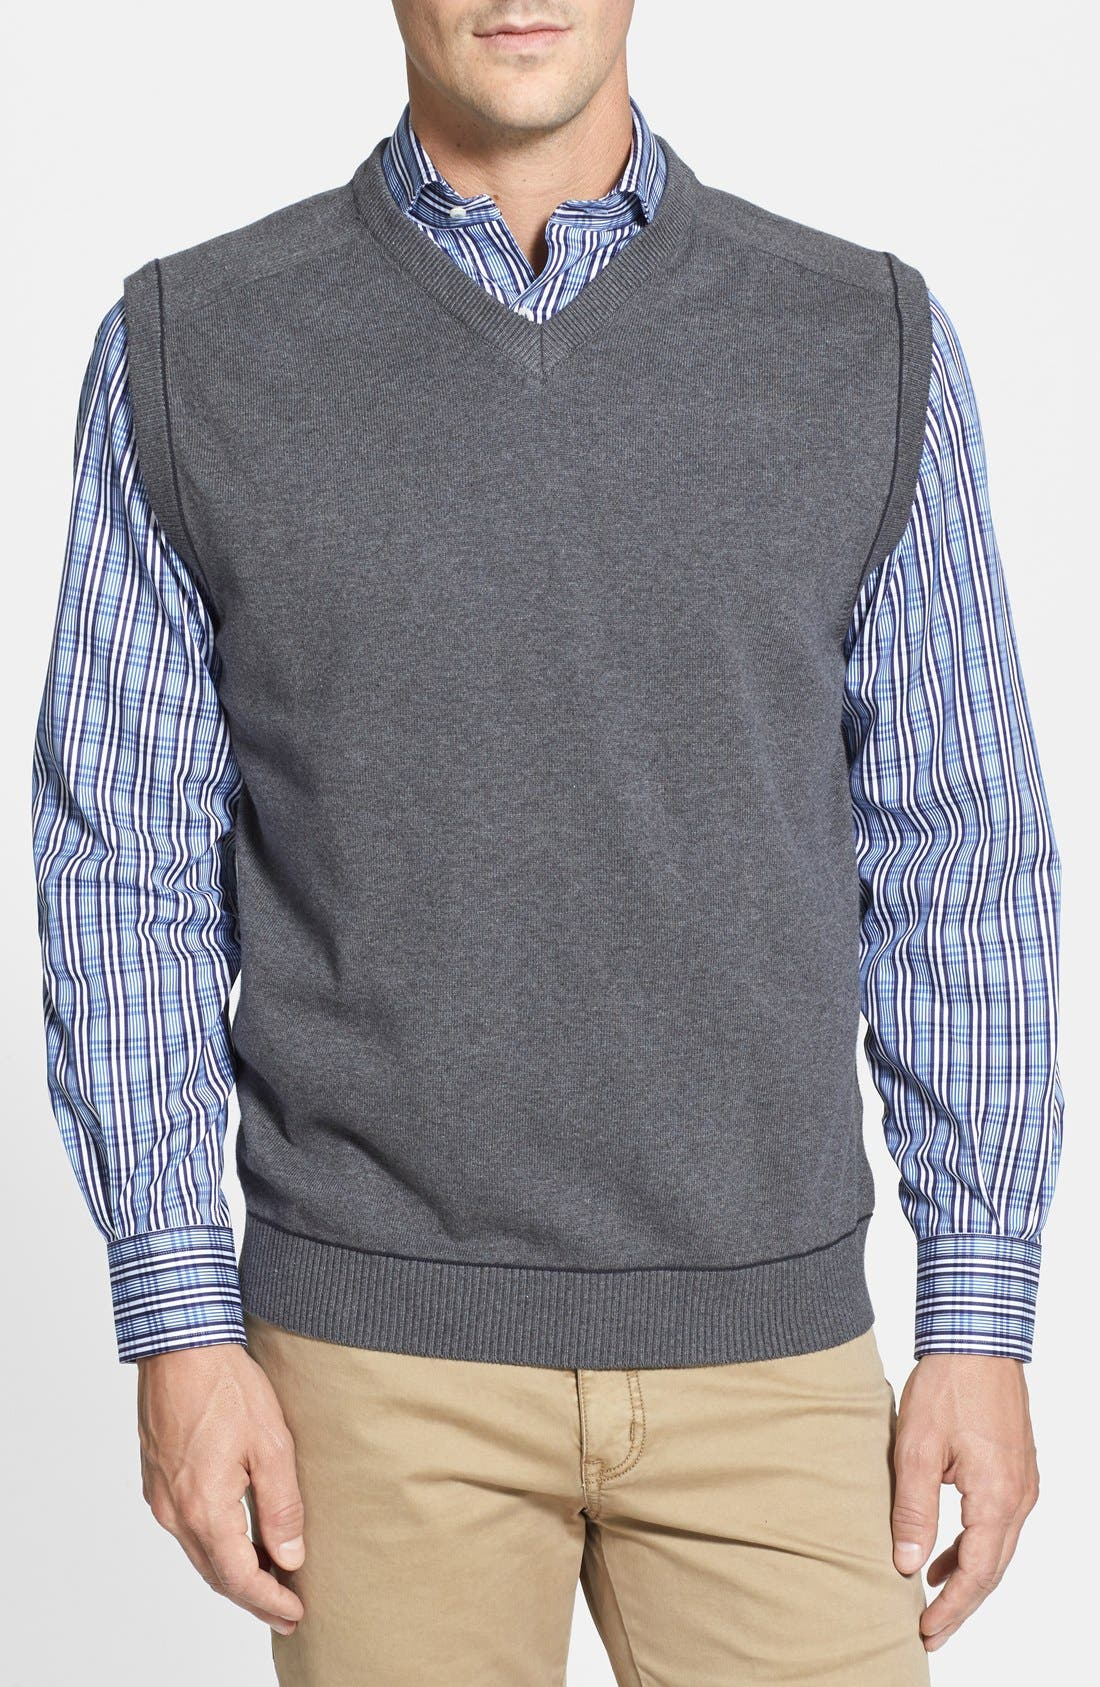 Men's Sweater Vests | Nordstrom